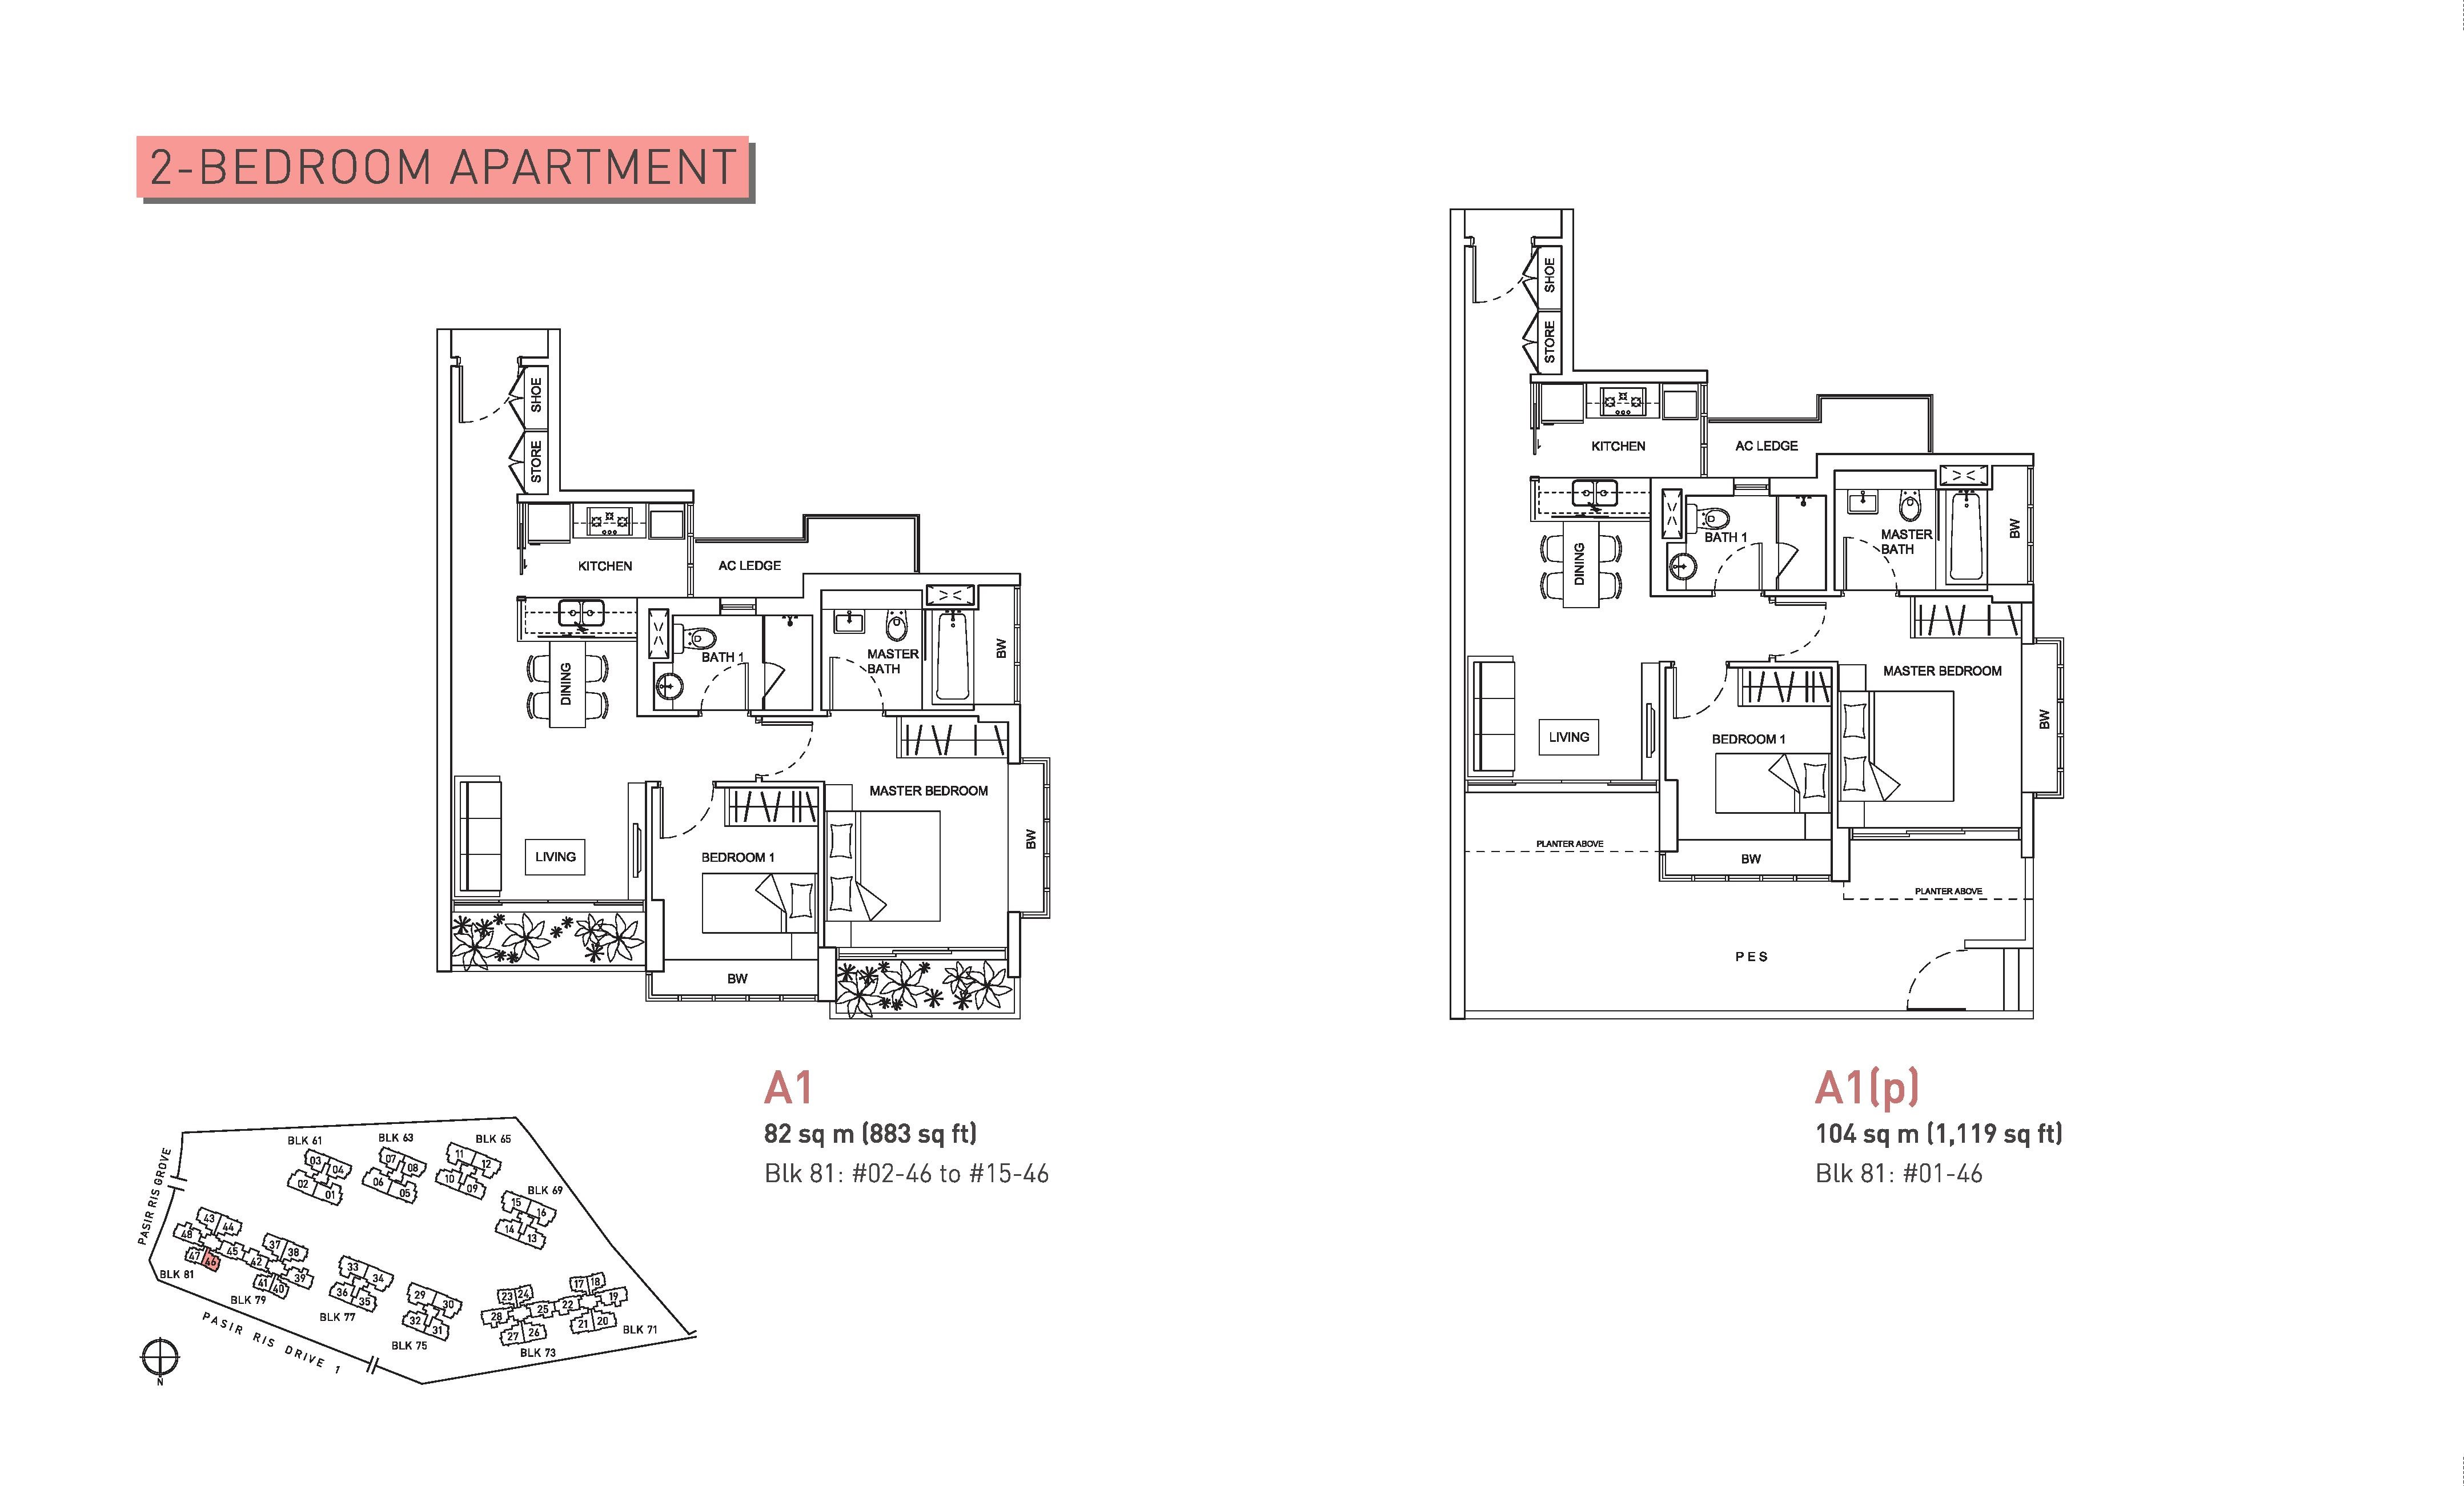 Livia 2 Bedroom Floor Plans Type A1 and A1(p)